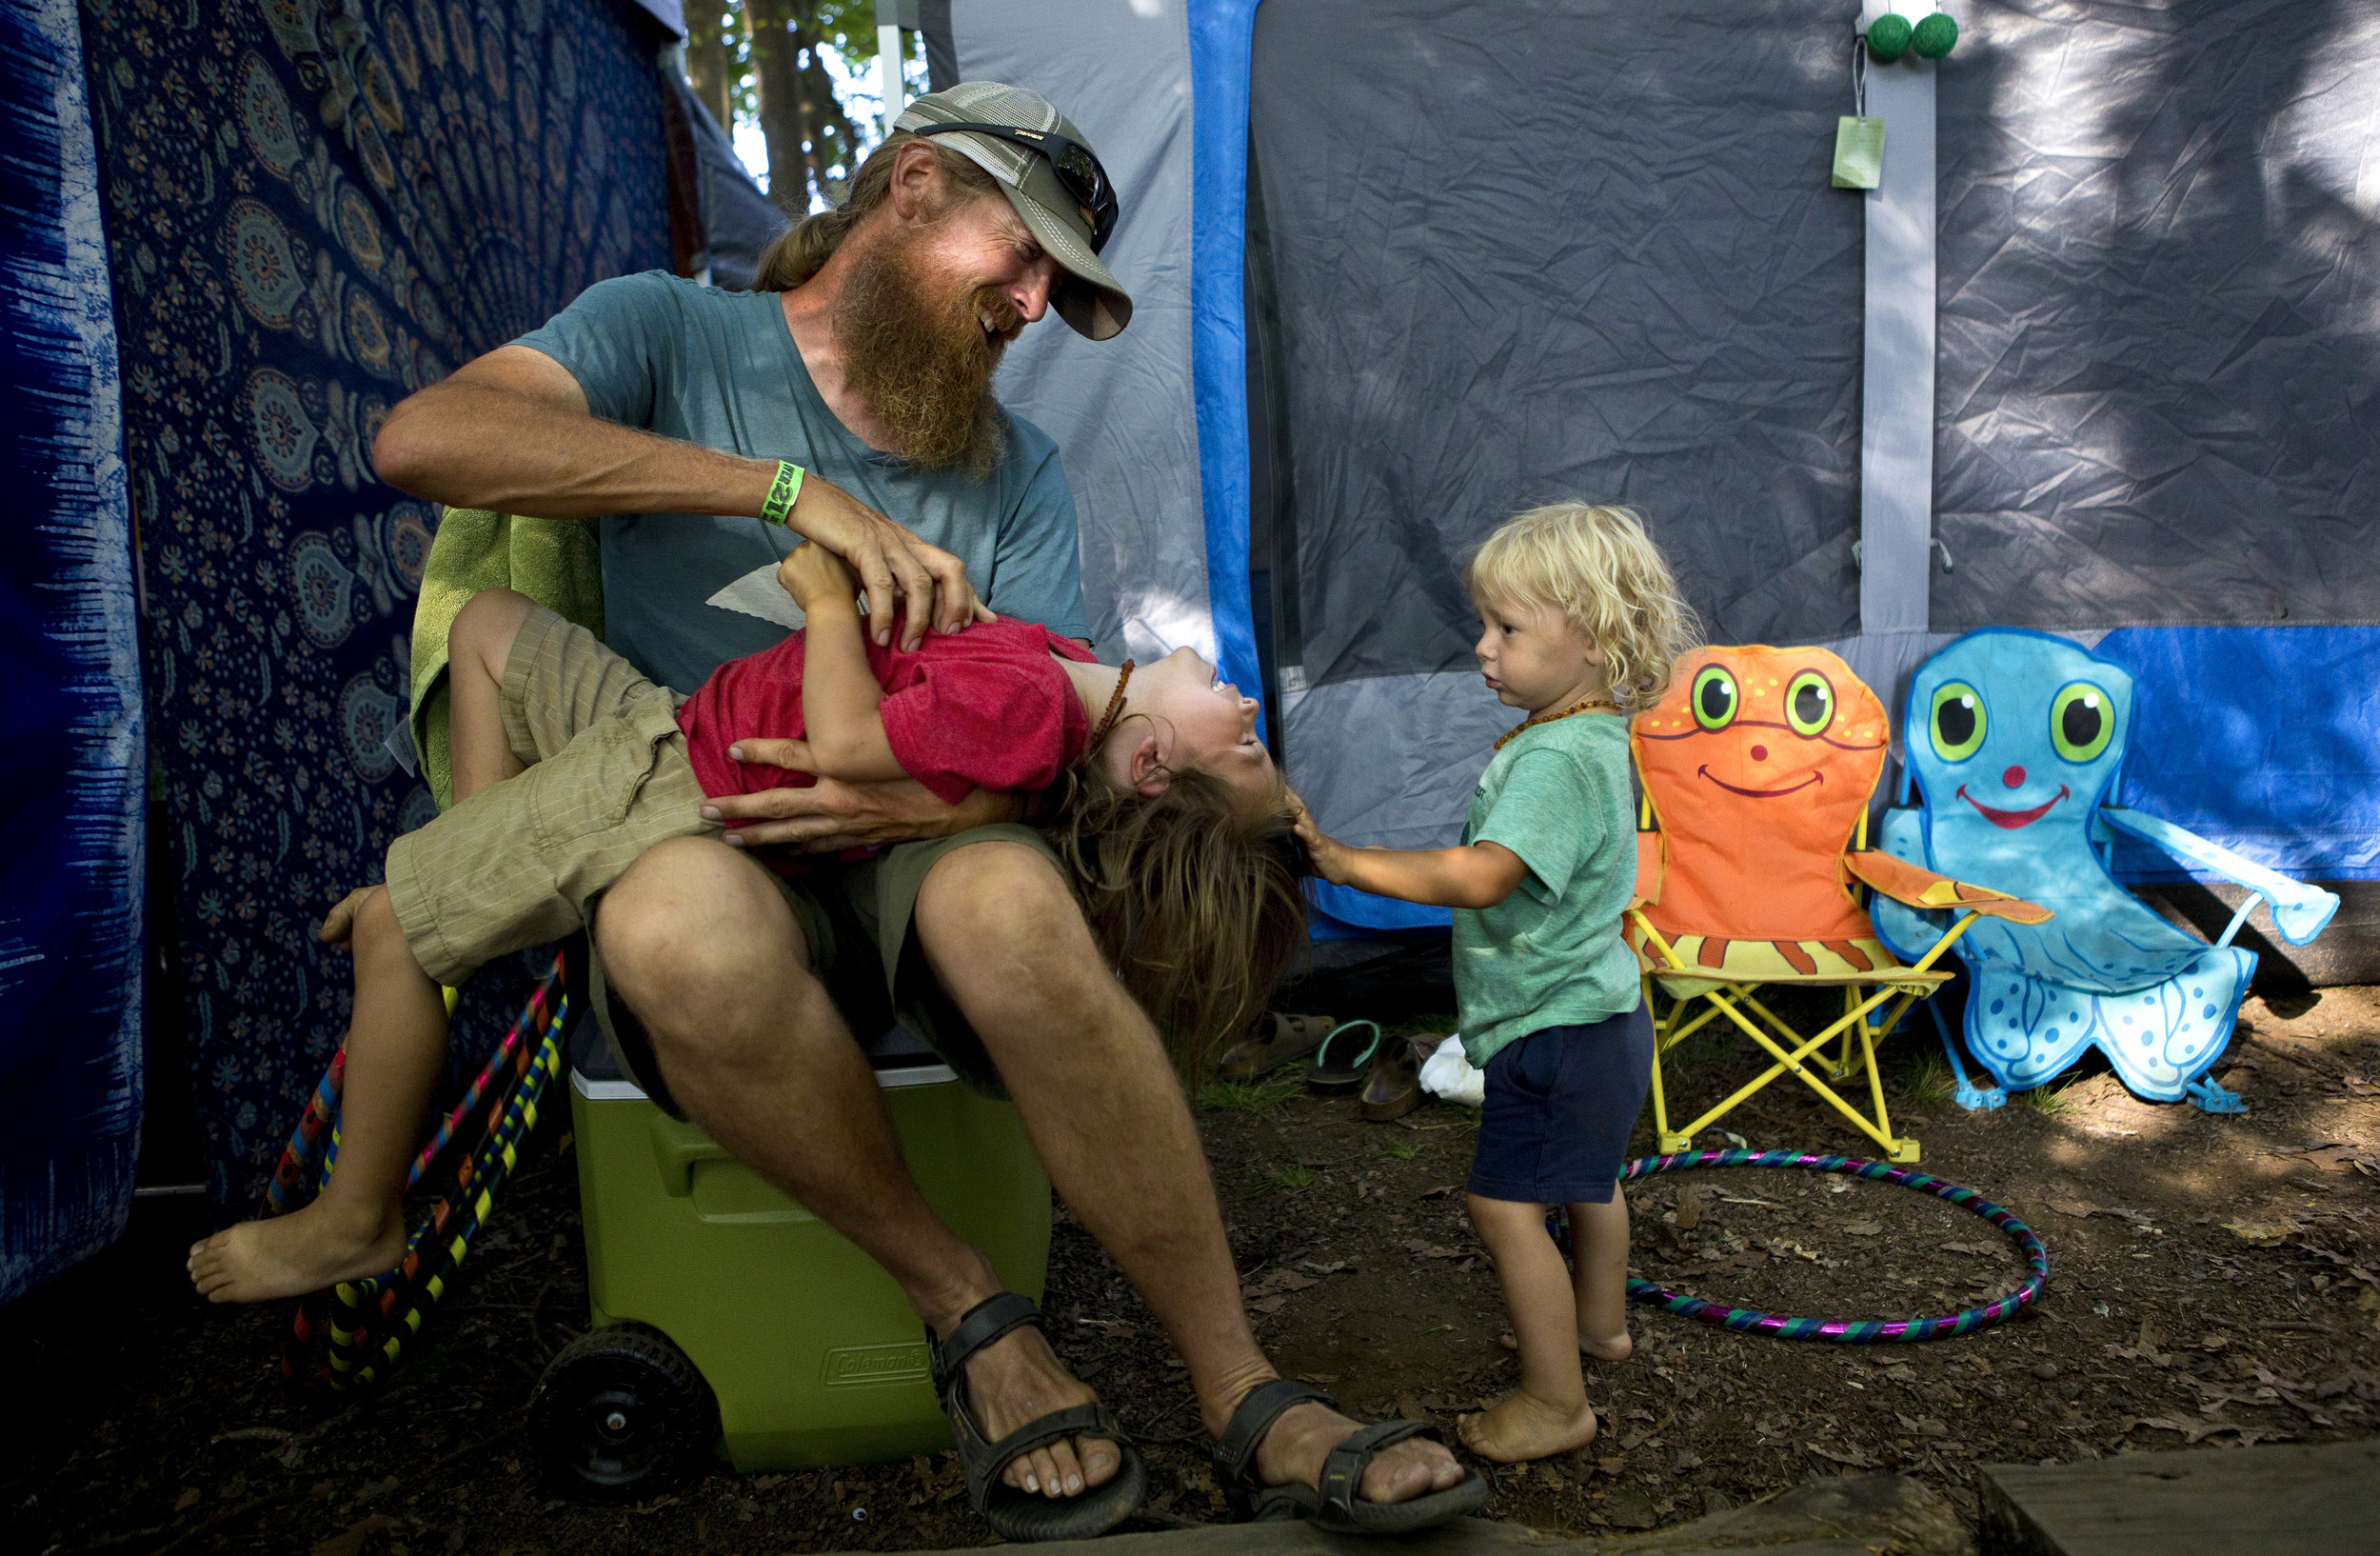 Rob Propster, 47, tickles his son Leo Propster, 4, while Sawyer Propster, 2, watches at their campsite during FloydFest in Floyd, Va. on July 28, 2018.